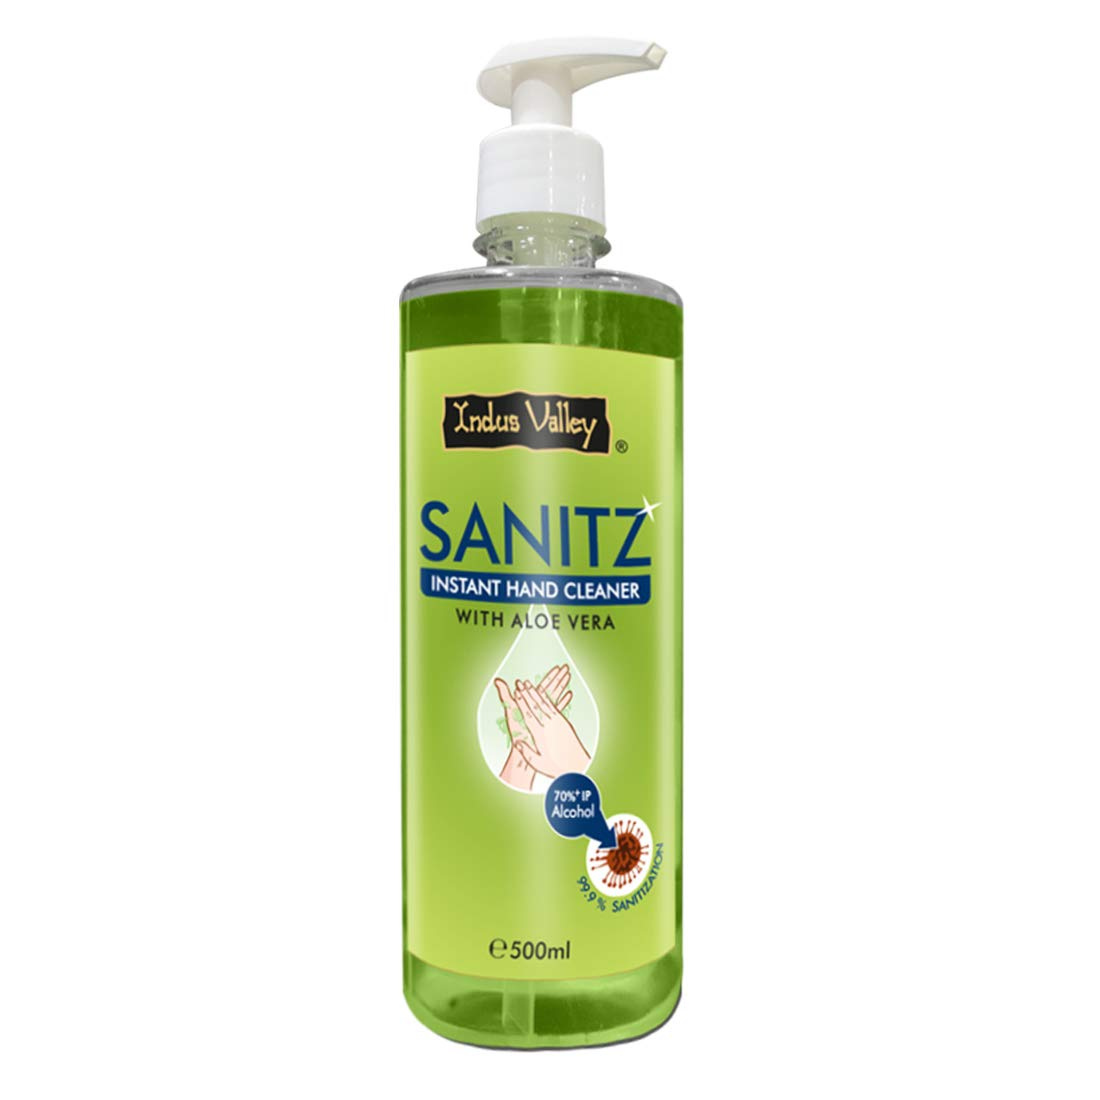 Indus Valley Sanitz Instant Hand Cleaner with Aloe Vera -  500ml